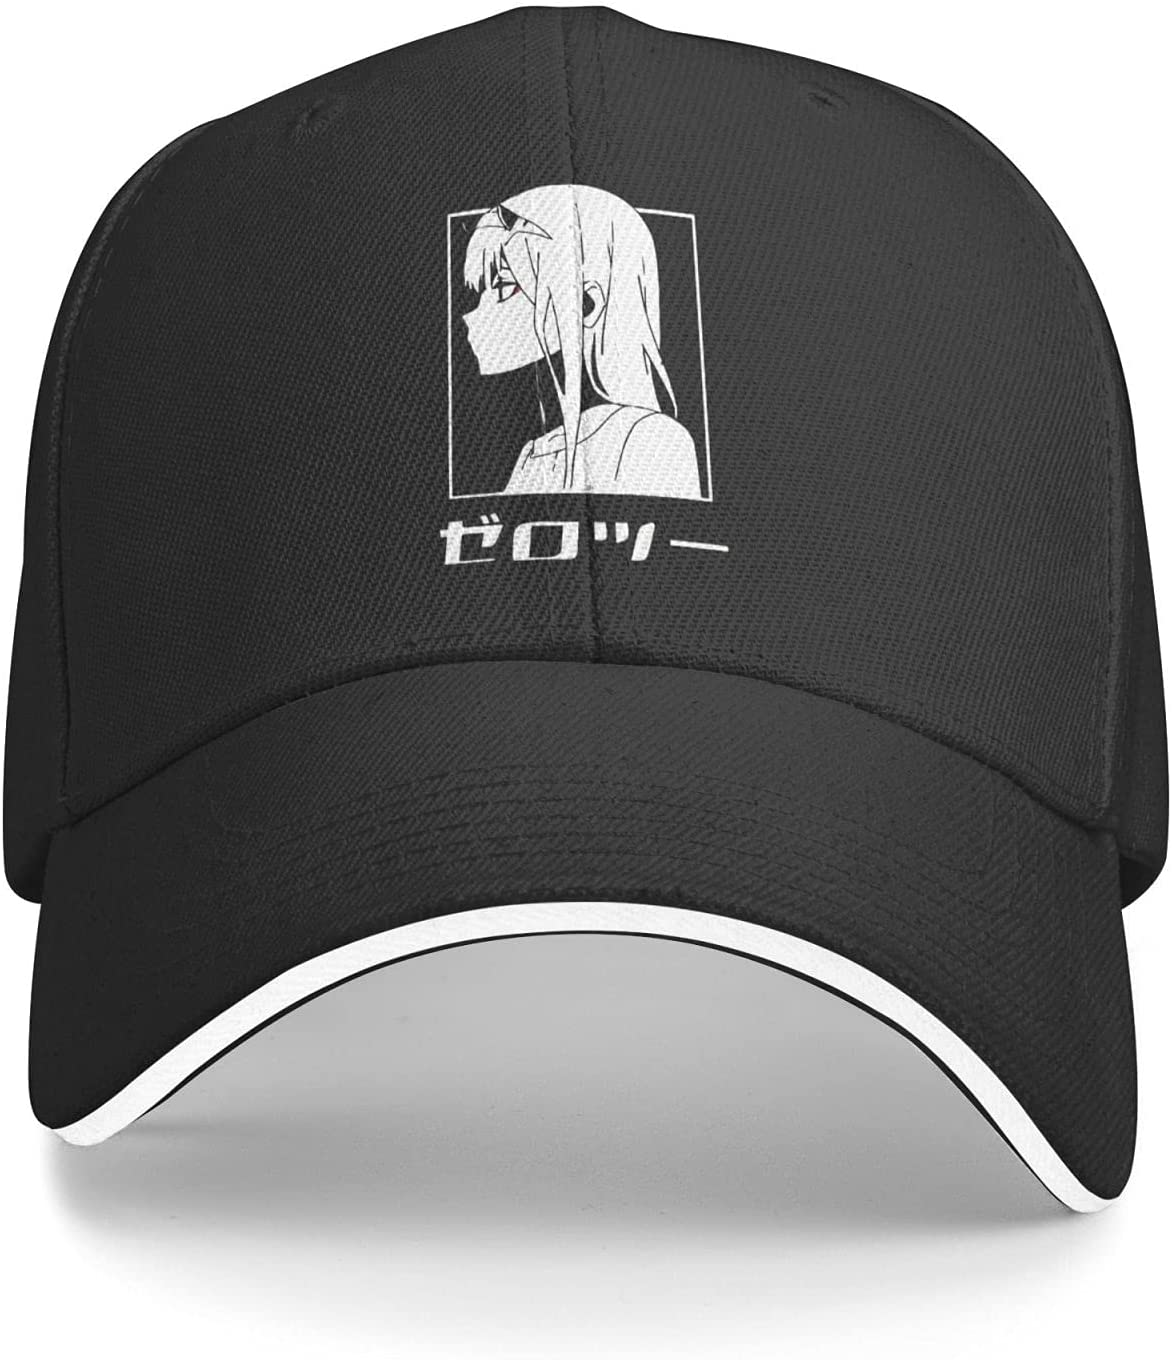 BLESS LINEN Anime Darling in The FRANXX Zero Two Fitted Cap Athletic Baseball Cap Ball Hat Dad Hat Beach Sun Hat